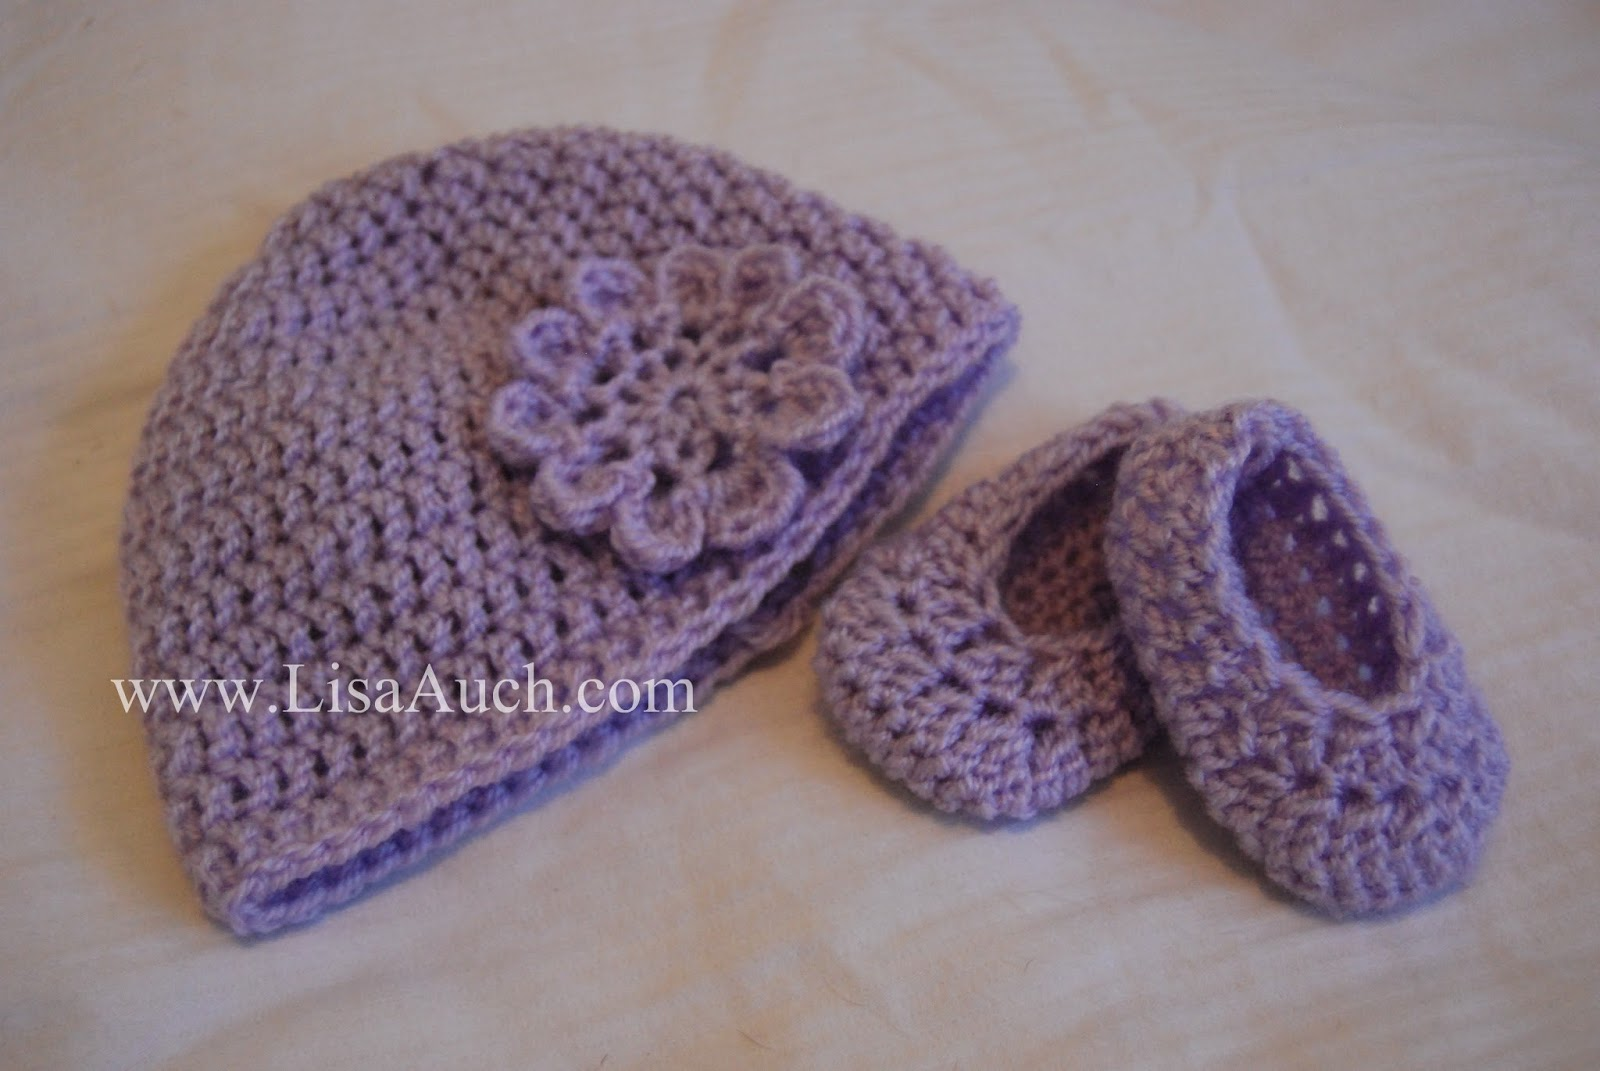 Crochet Baby Hat Pattern Instructions : Free Crochet Baby Booties and Hat Pattern